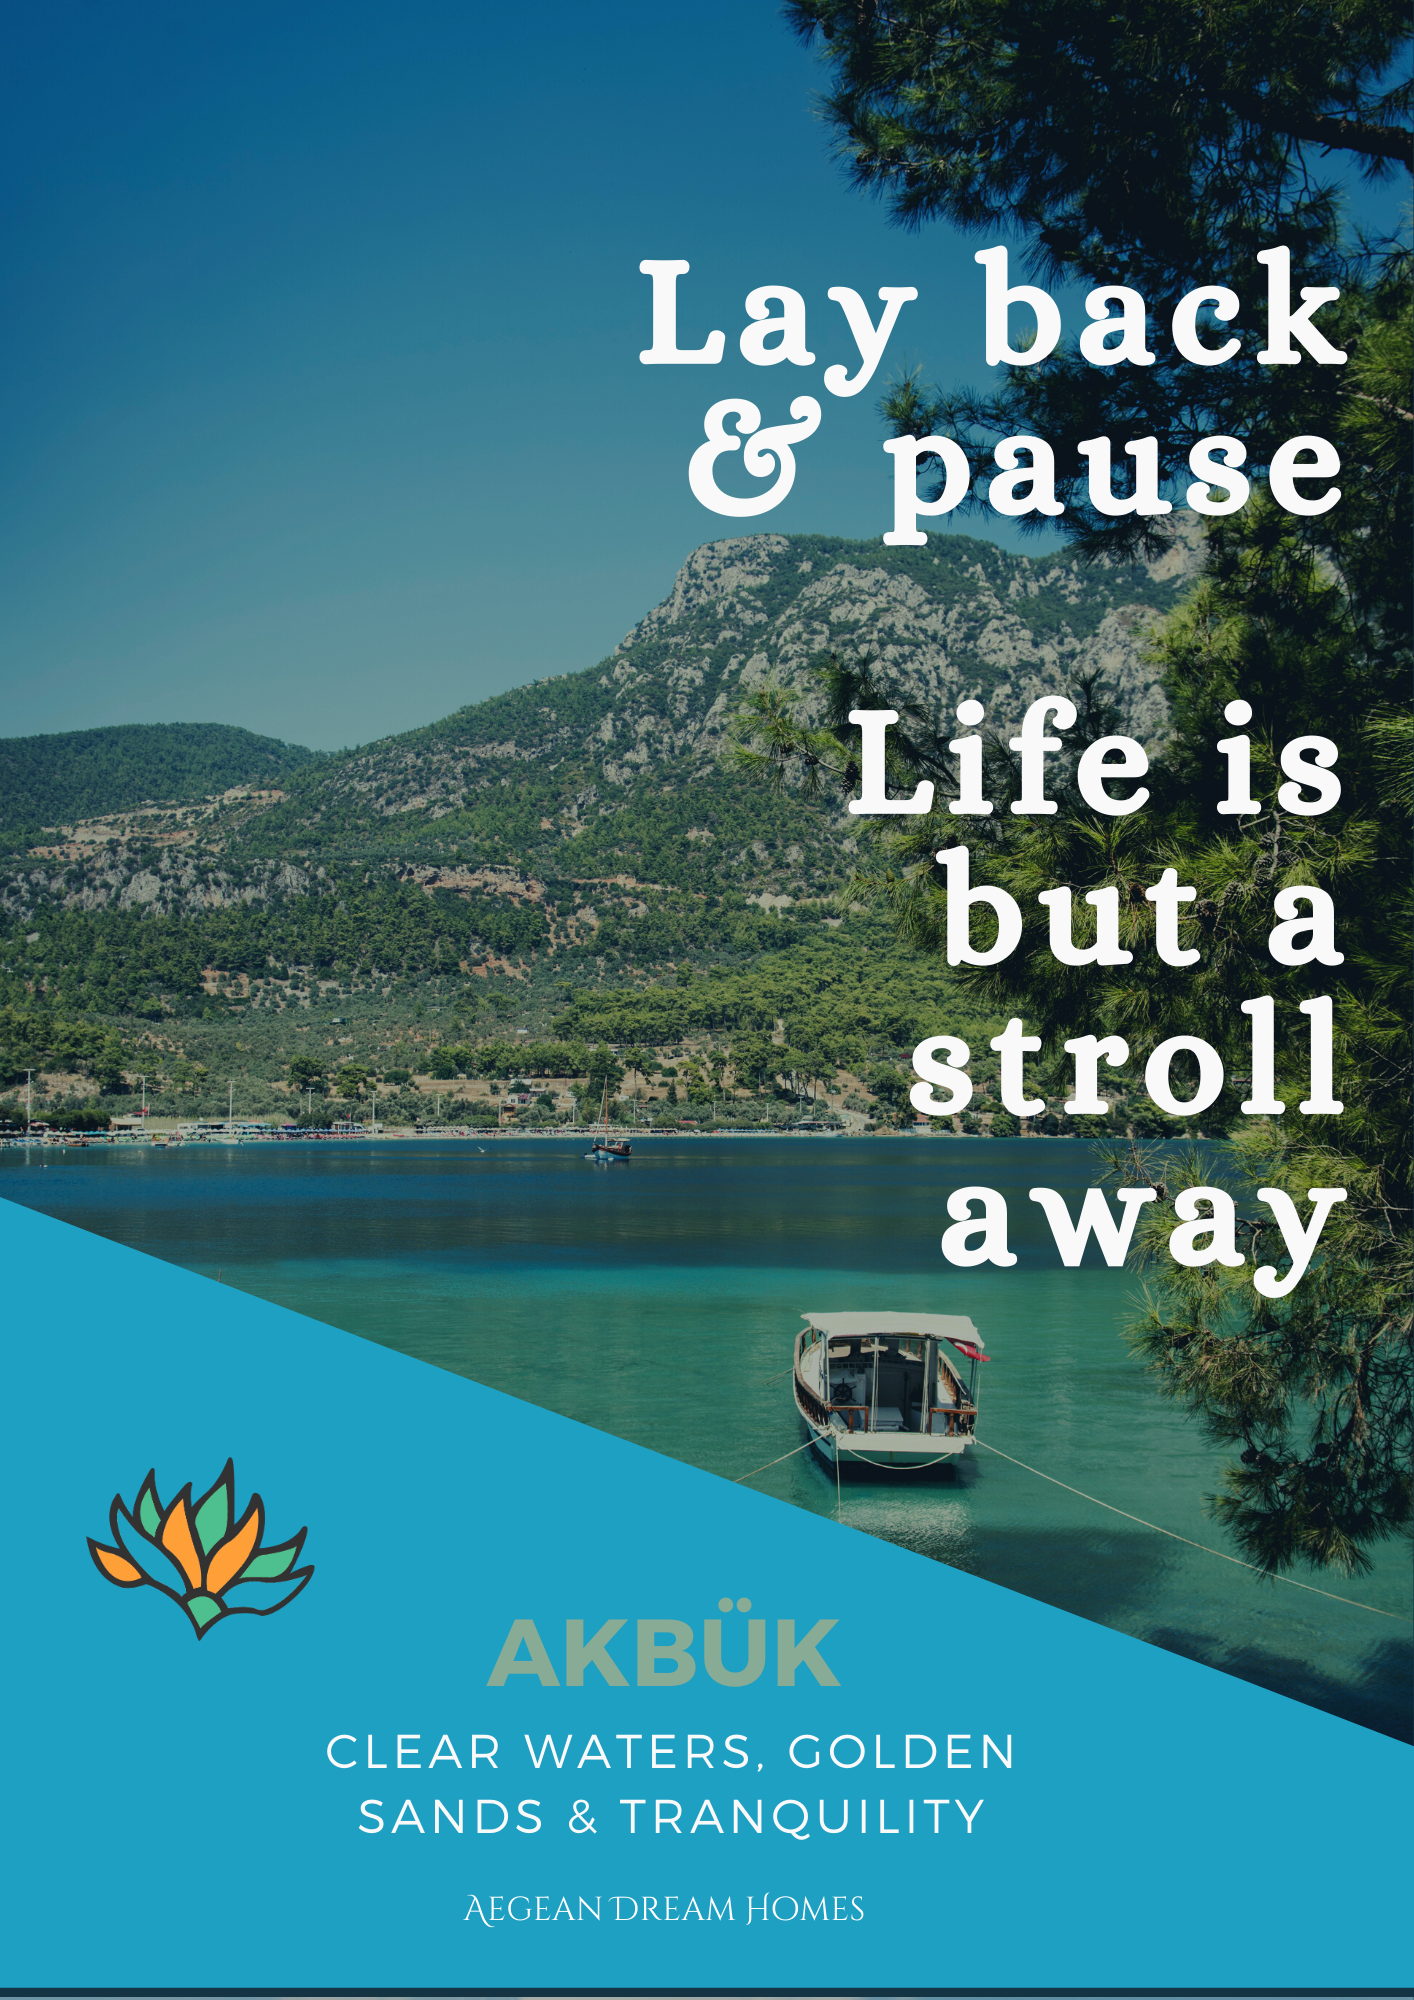 Akbuk property for sale banner. Picture of Akbuk bay. Text overlay reads: Lay back and pause. Life is but a stroll away. Aegean Dream Homes.com